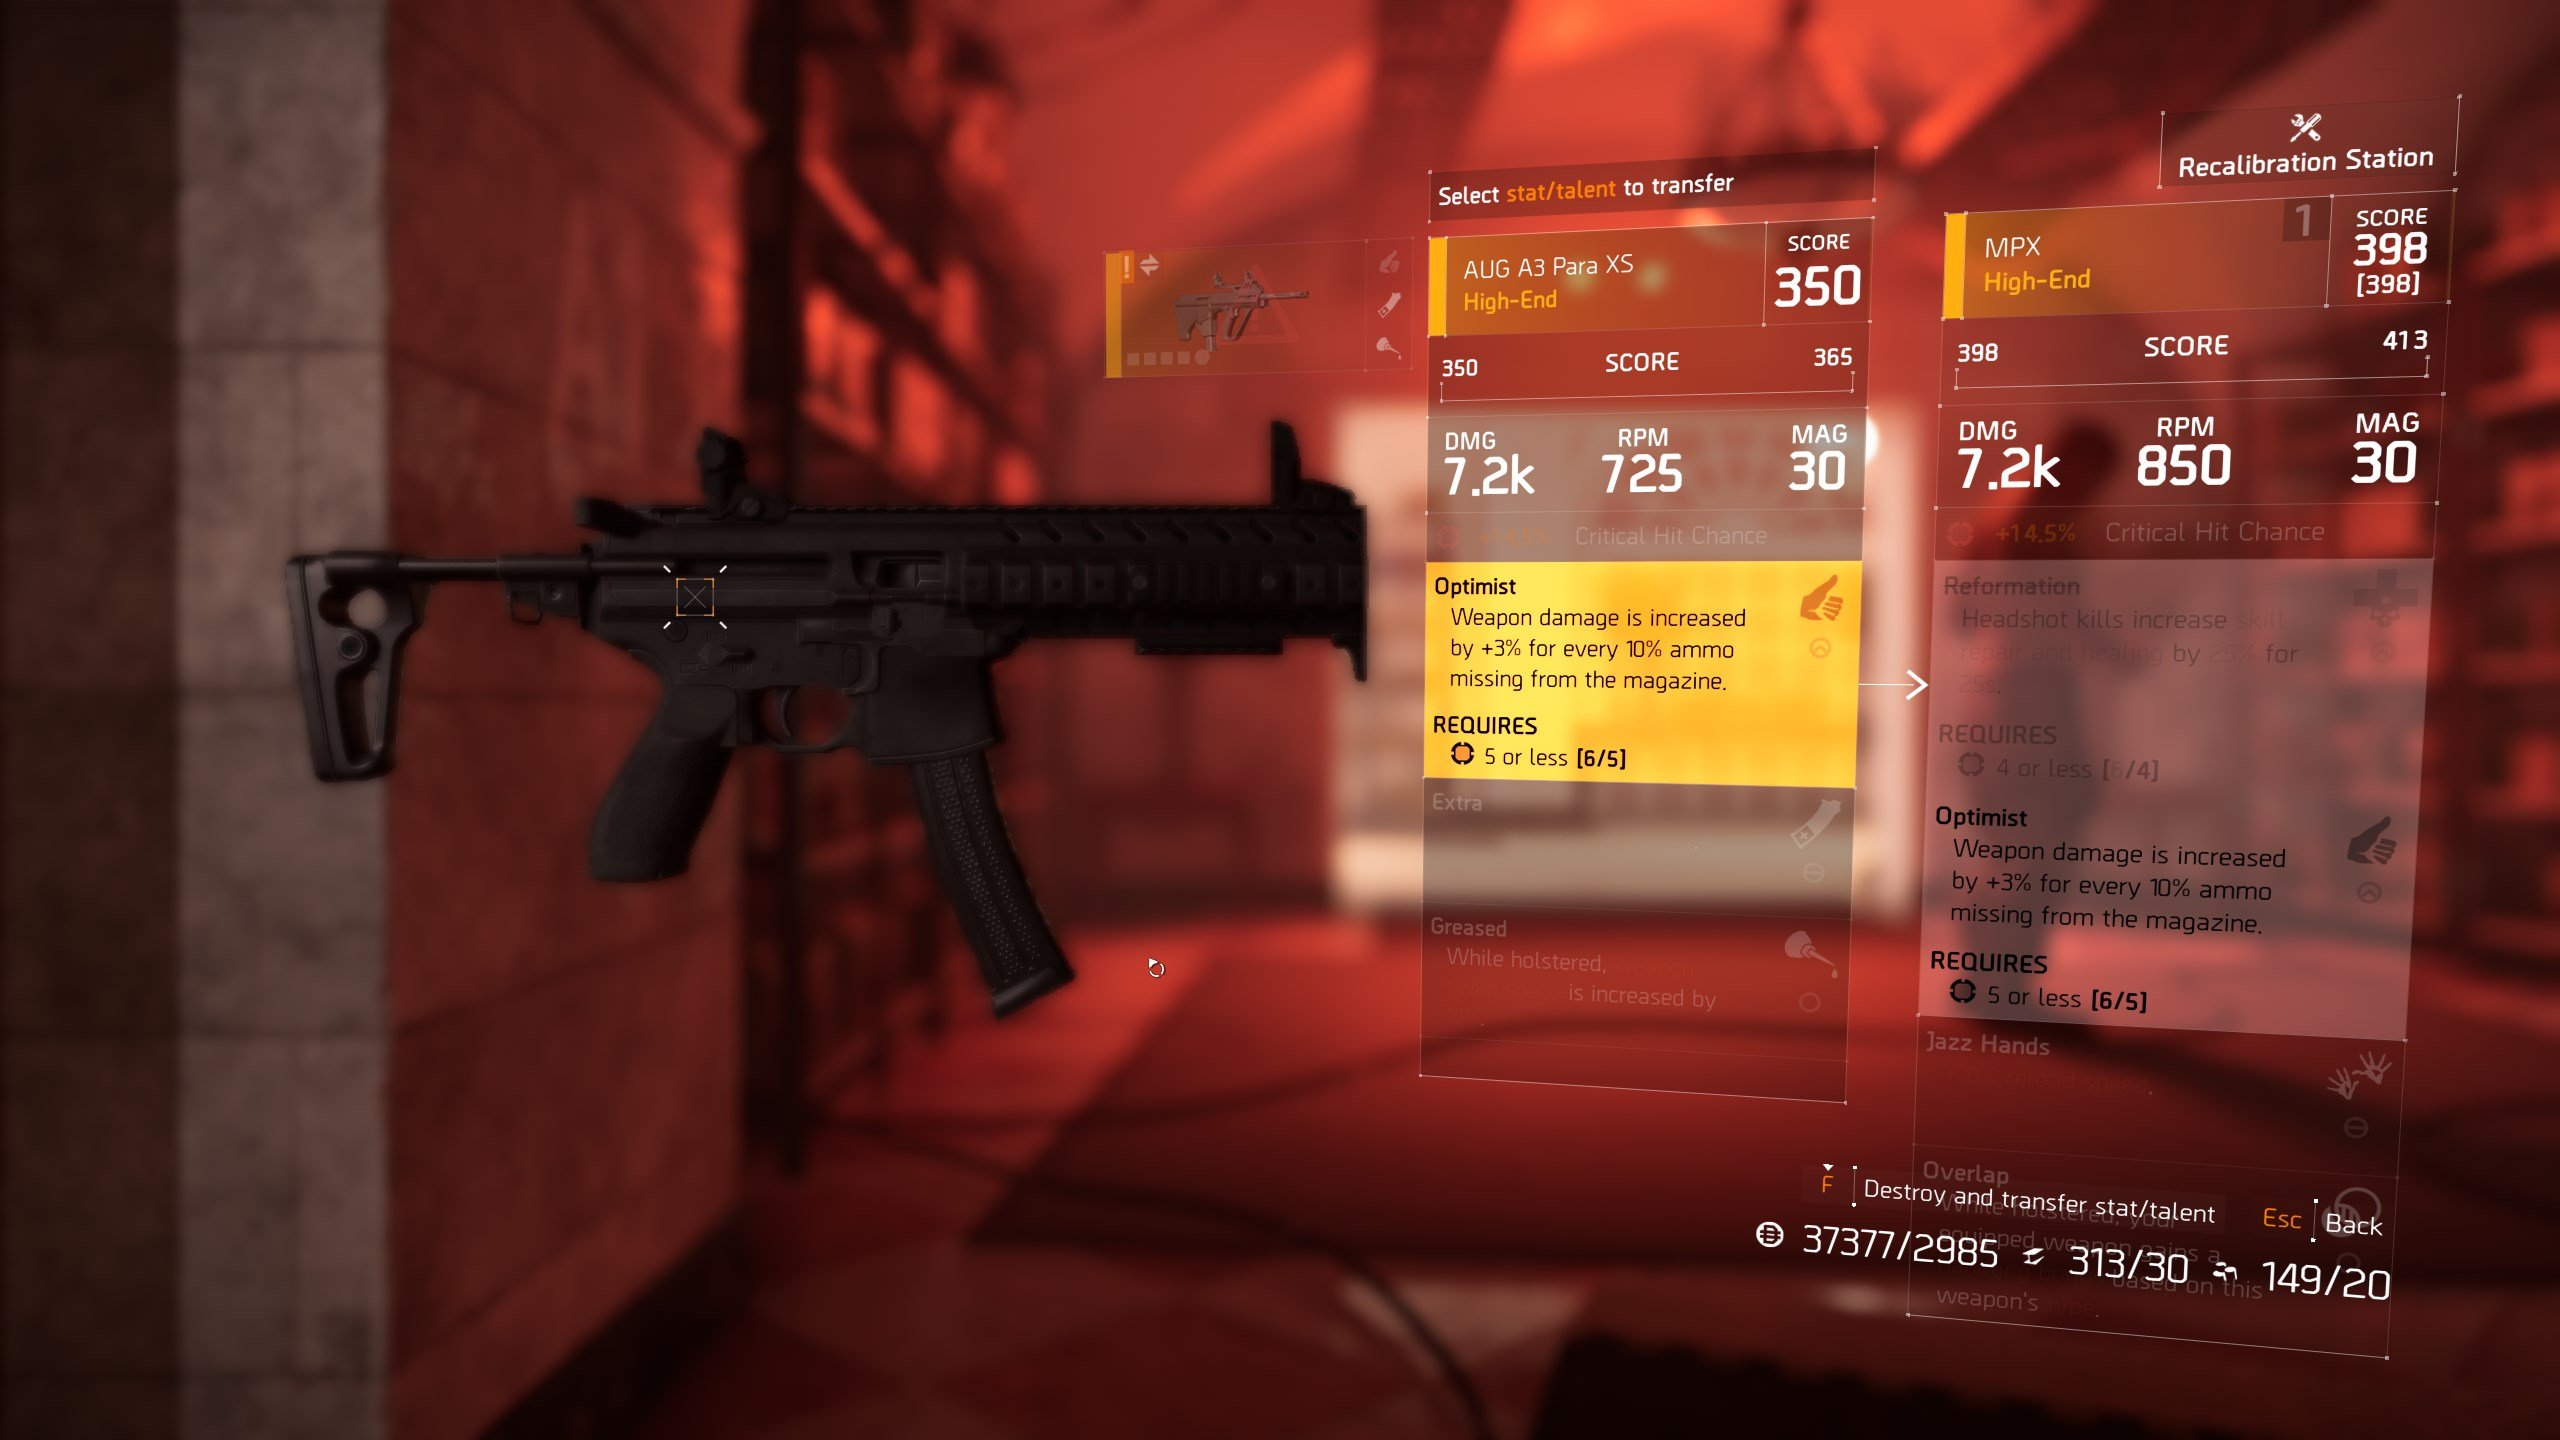 How to use the Recalibration Station in The Division 2